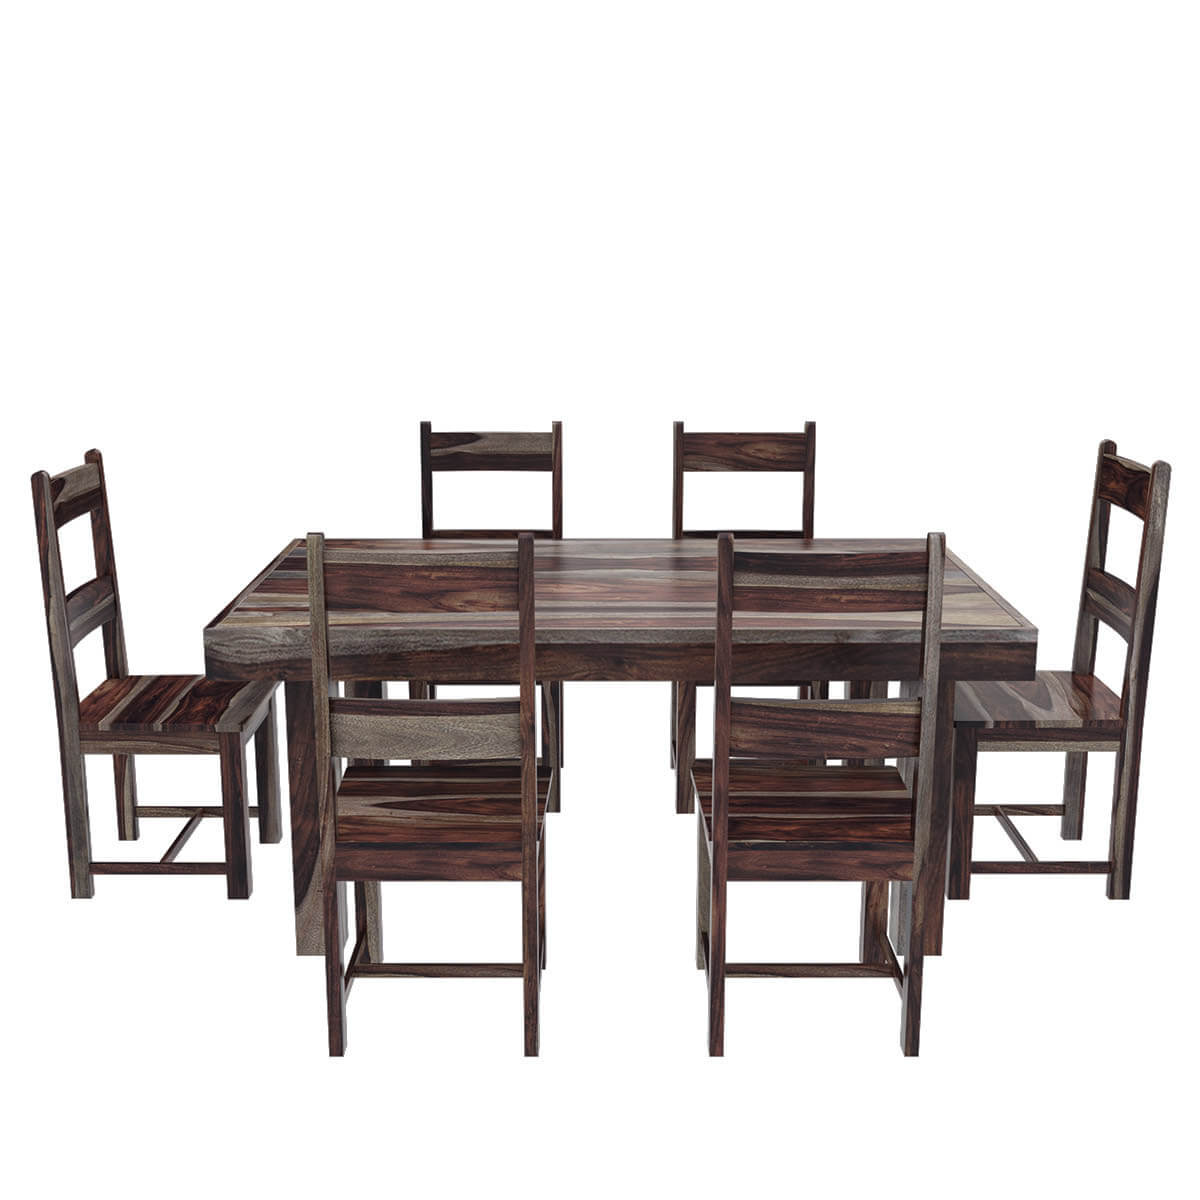 frisco modern solid wood casual rustic dining room table and chair set. Black Bedroom Furniture Sets. Home Design Ideas